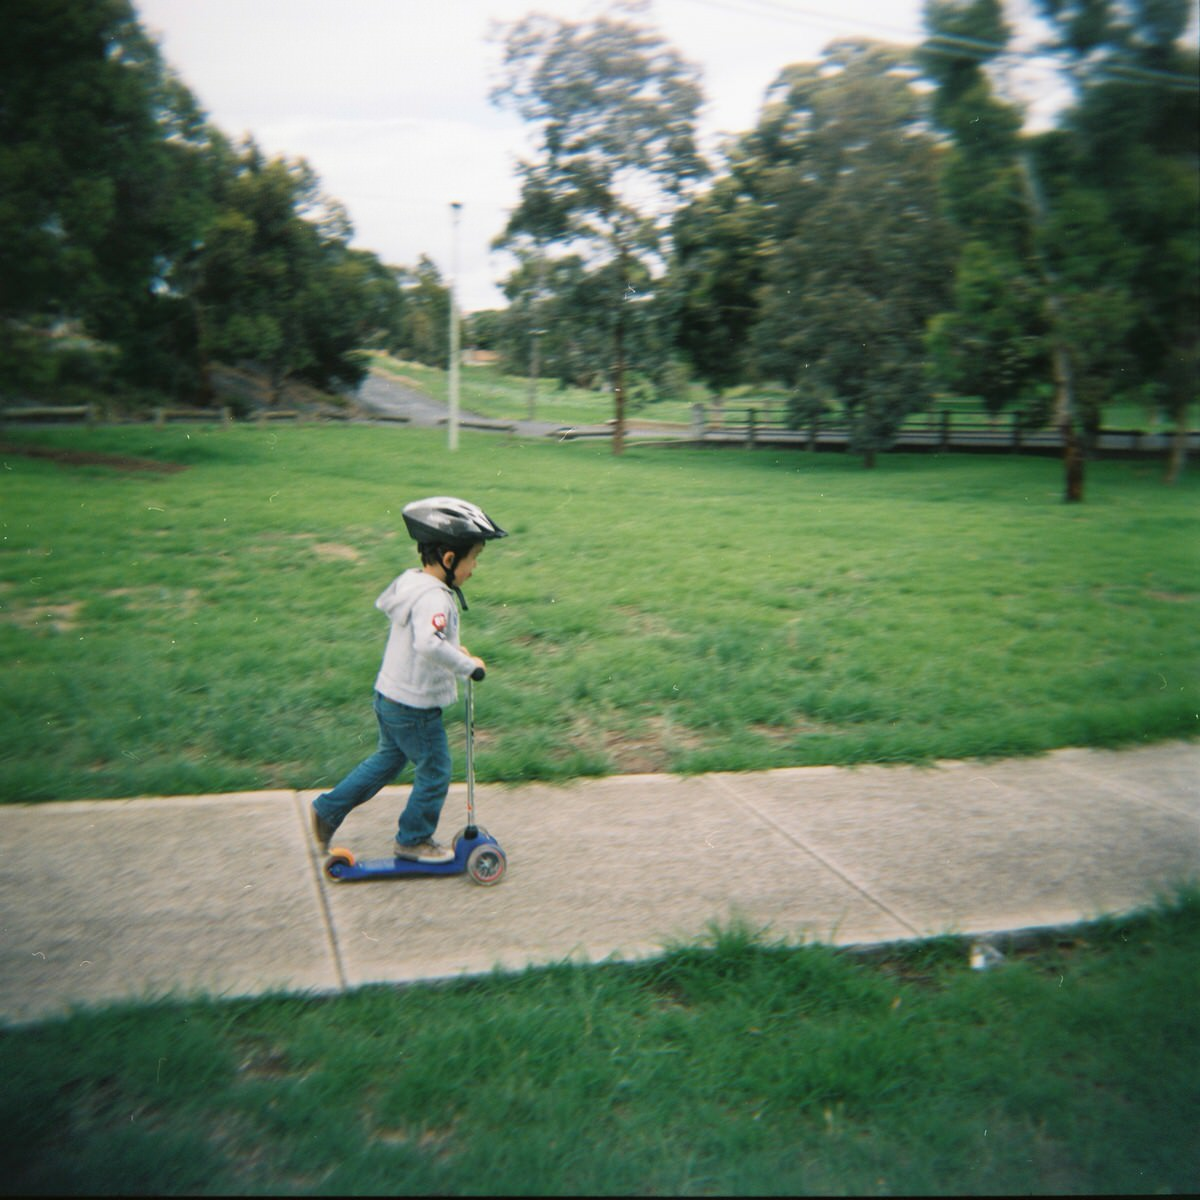 My son, Ruben. 4 years old. Taken on a Holga film camera.